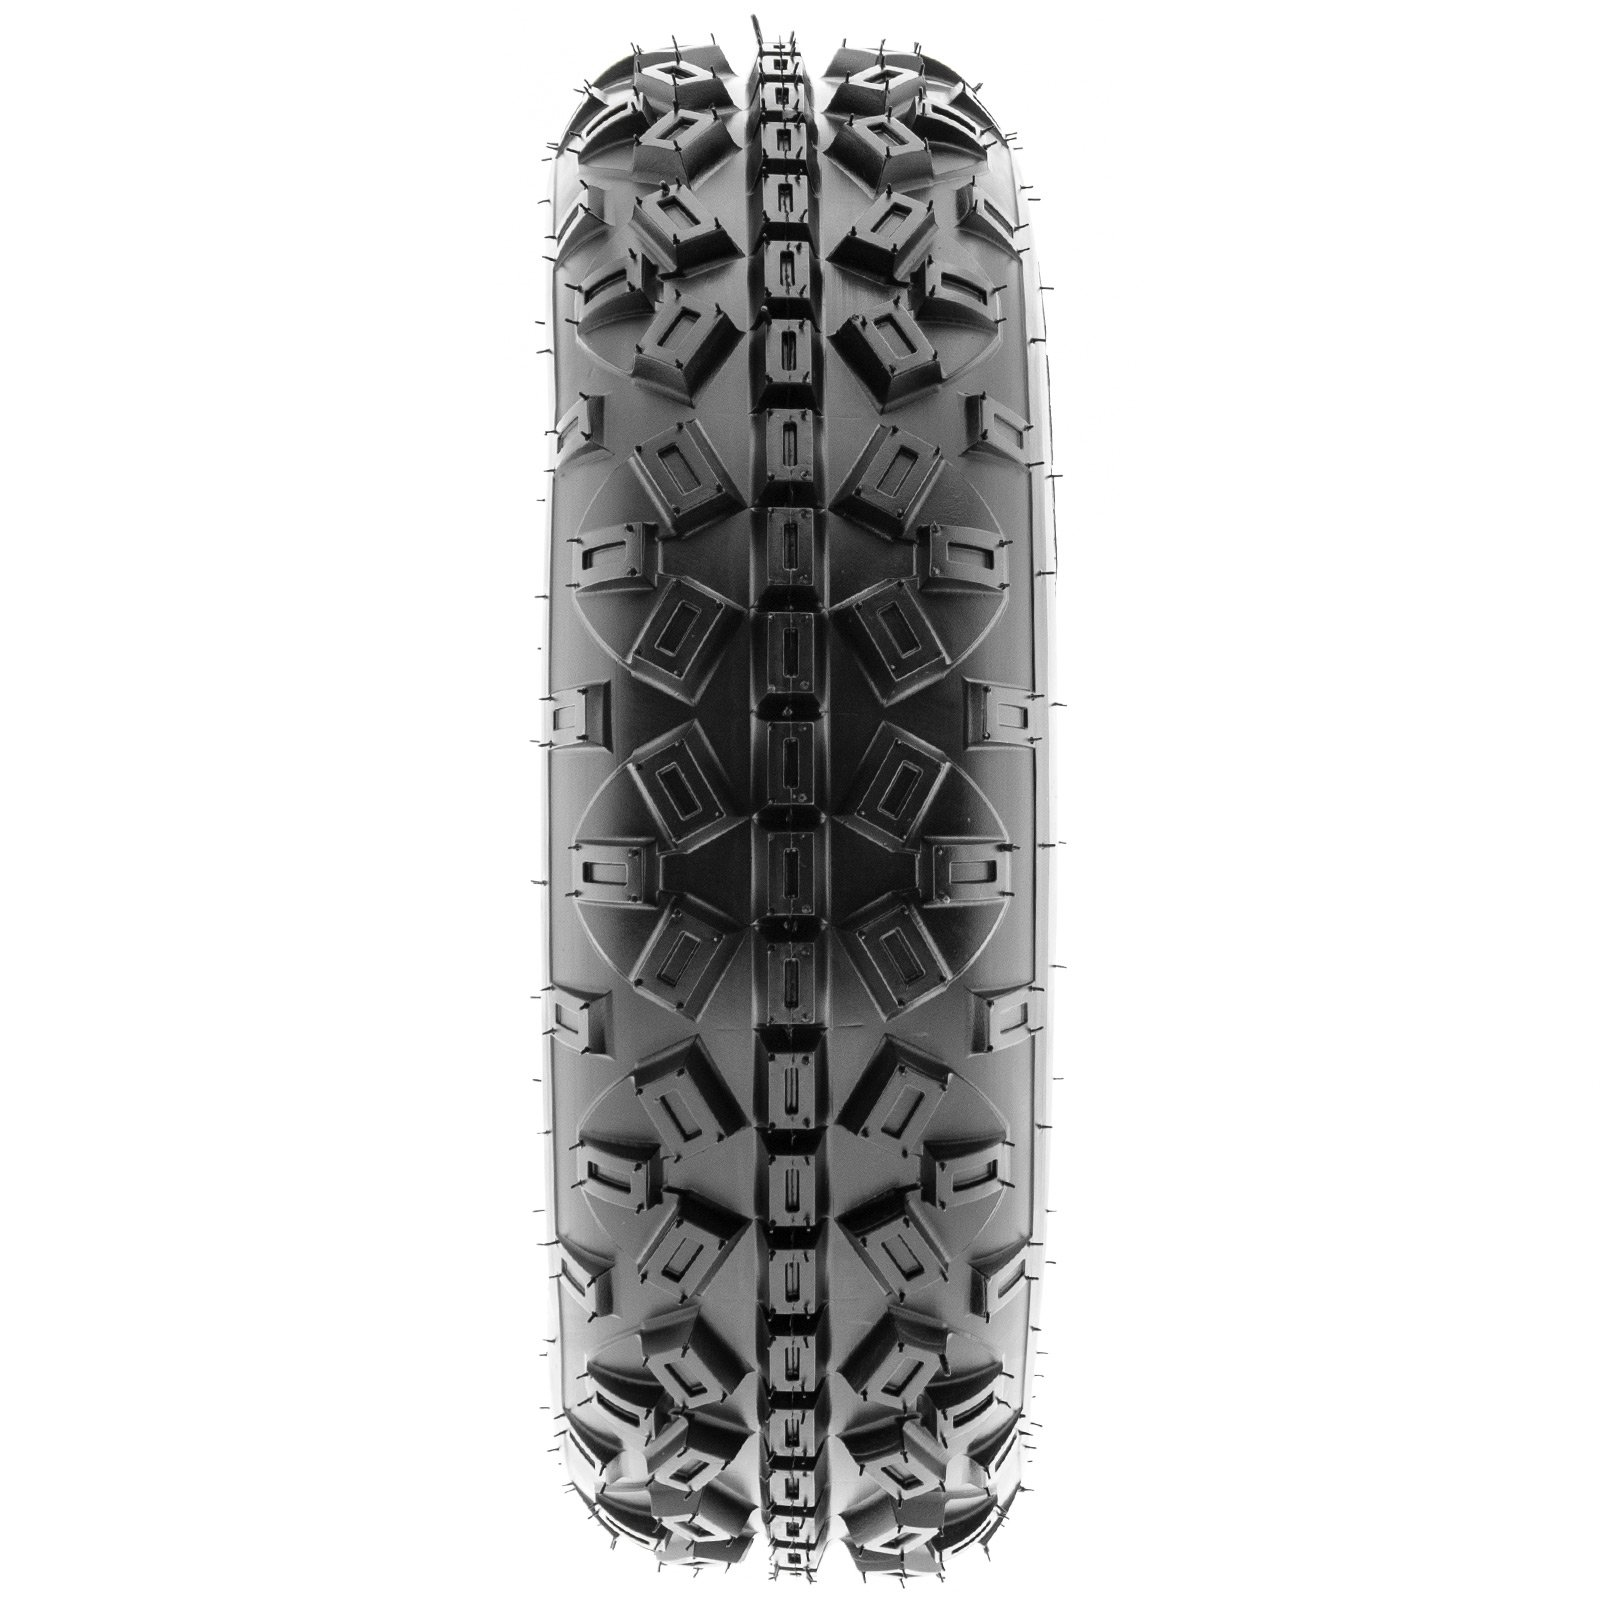 SunF Knobby XC MX ATV Tires 21x6-10 & 20x11-9 6 PR A035 (Full set of 4, Front & Rear) by SunF (Image #4)